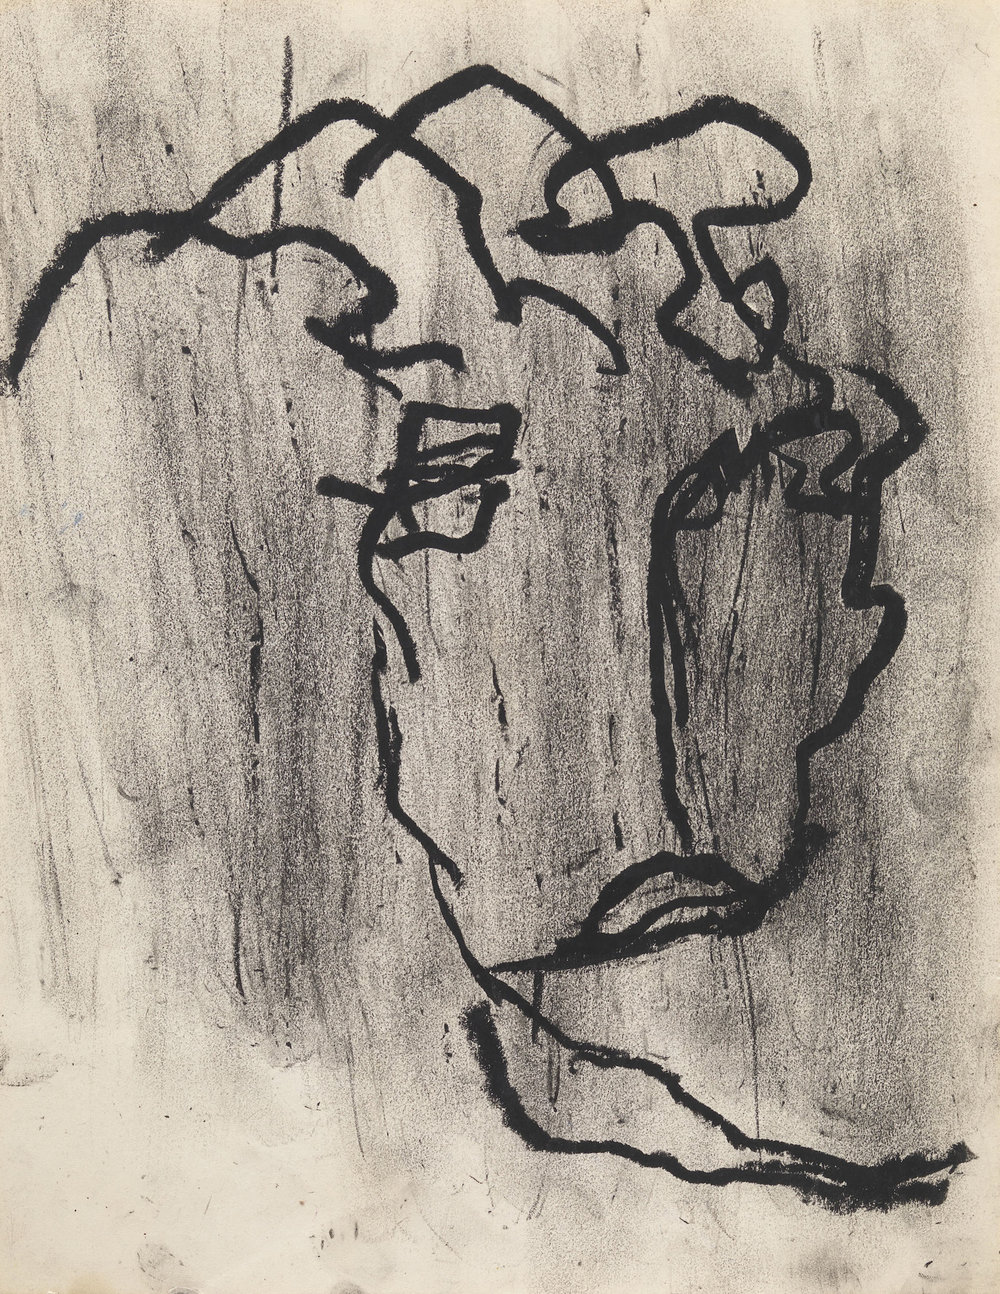 Dan Asher,  Untitled,  1980s, oil stick on paper, 14 x 11 in.